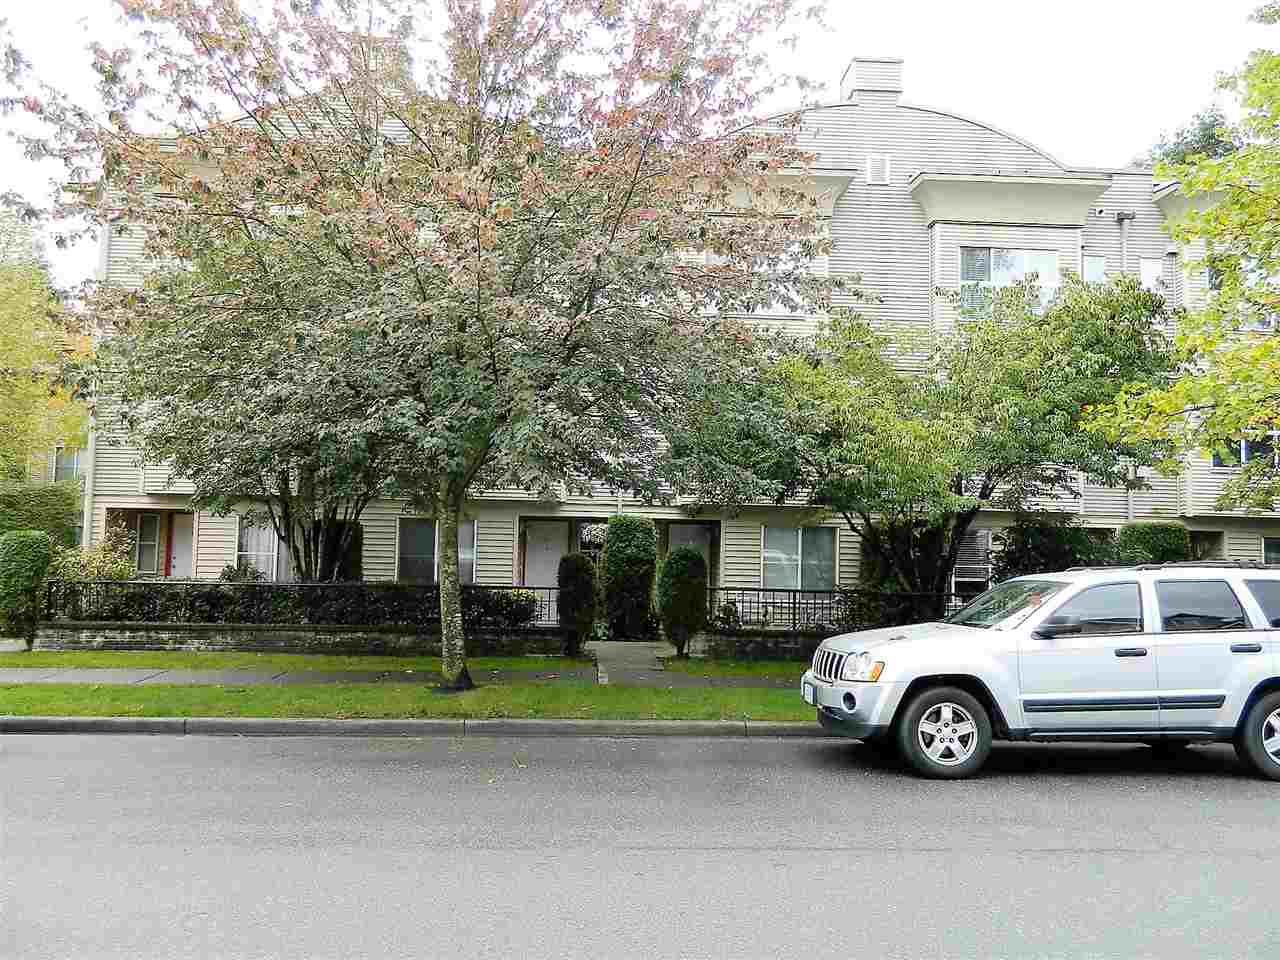 Windsor Crossing! Family oriented townhome complex in an AWESOME Pitt Meadows location! North of the tracks, & just steps away from Starbucks, Save-on Foods, West Coast Express, movie theatre, banking, Shoppers Drug Mart, Maclean Park...the list goes on!